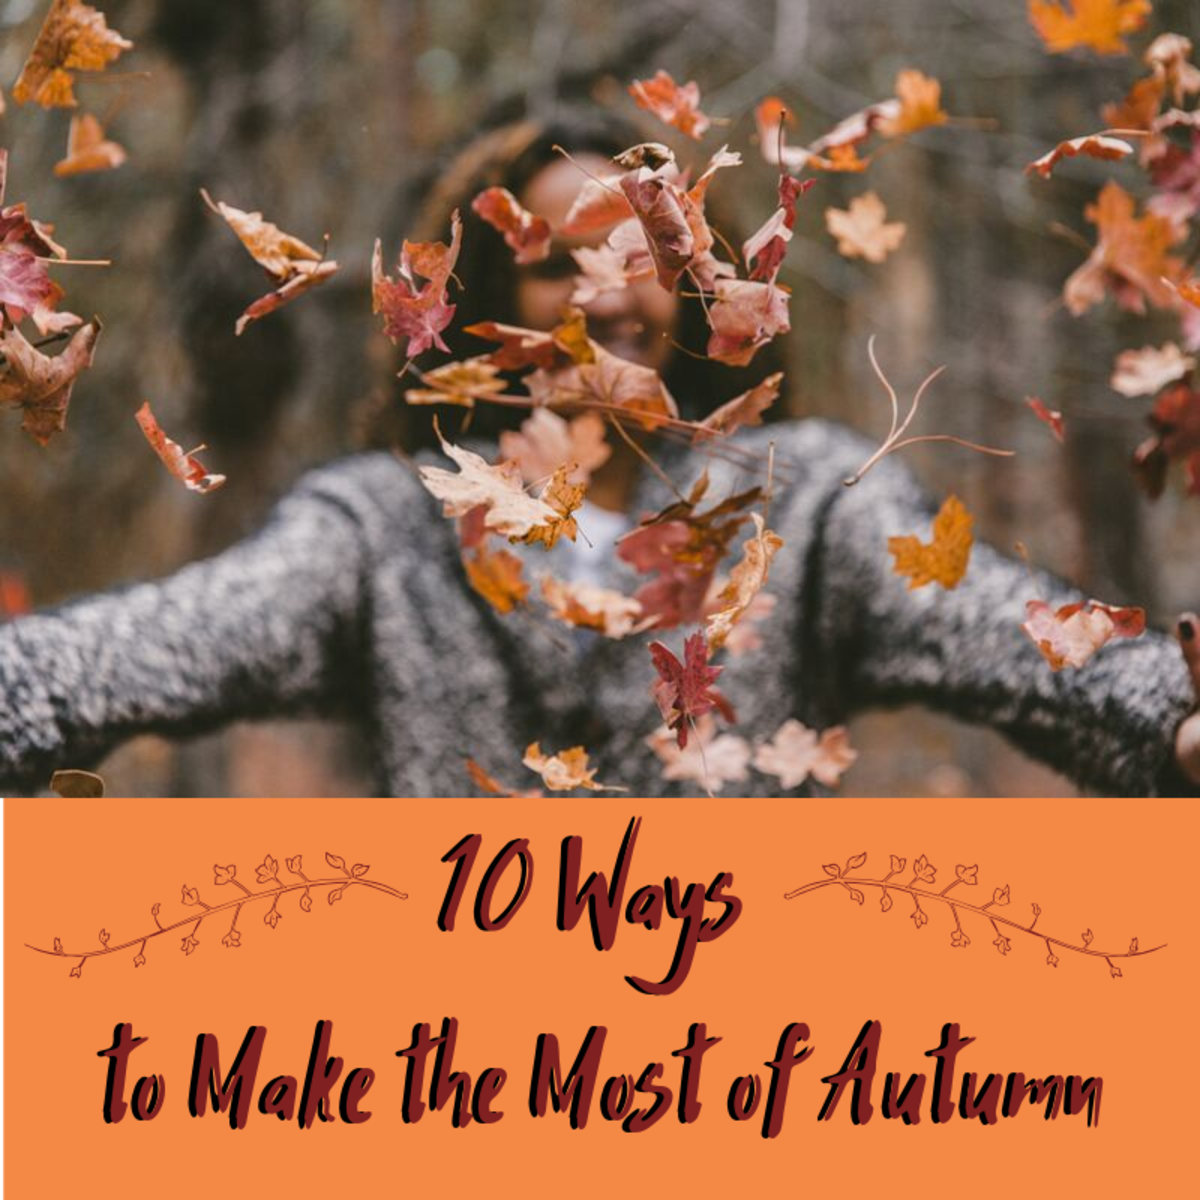 10 Ways to Make the Most of the Fall Season